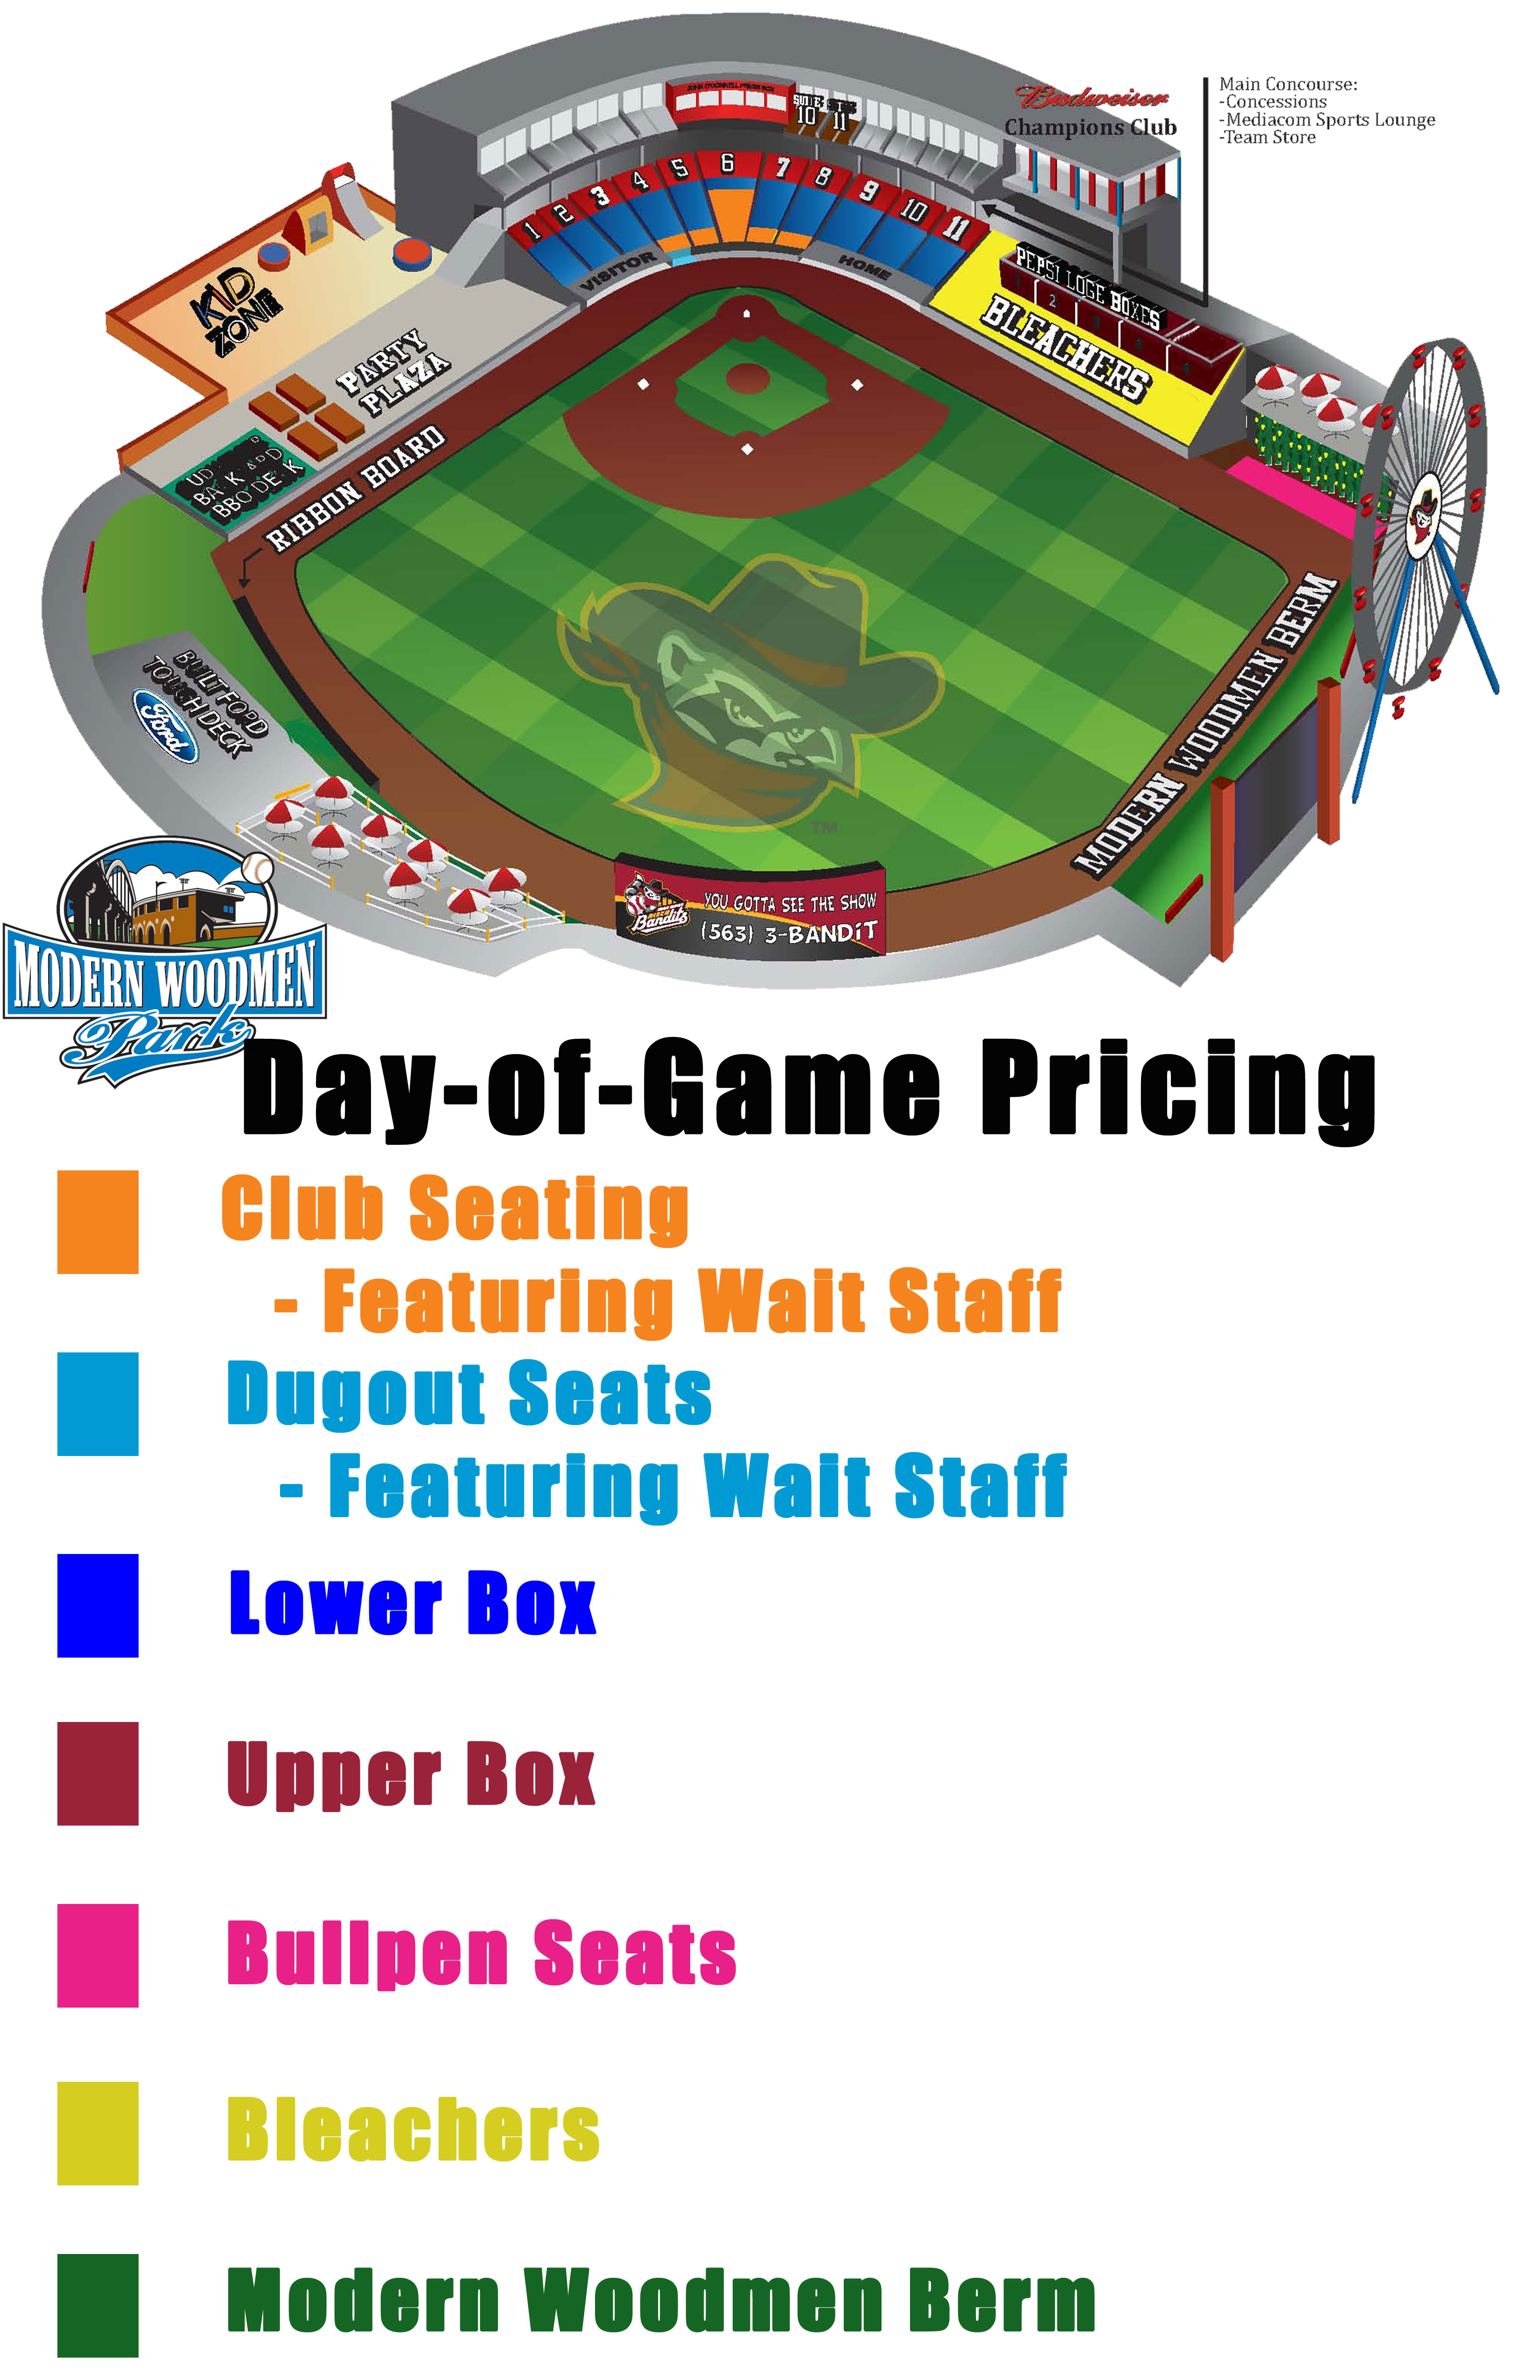 Seating Layout Quad Cities River Bandits Content